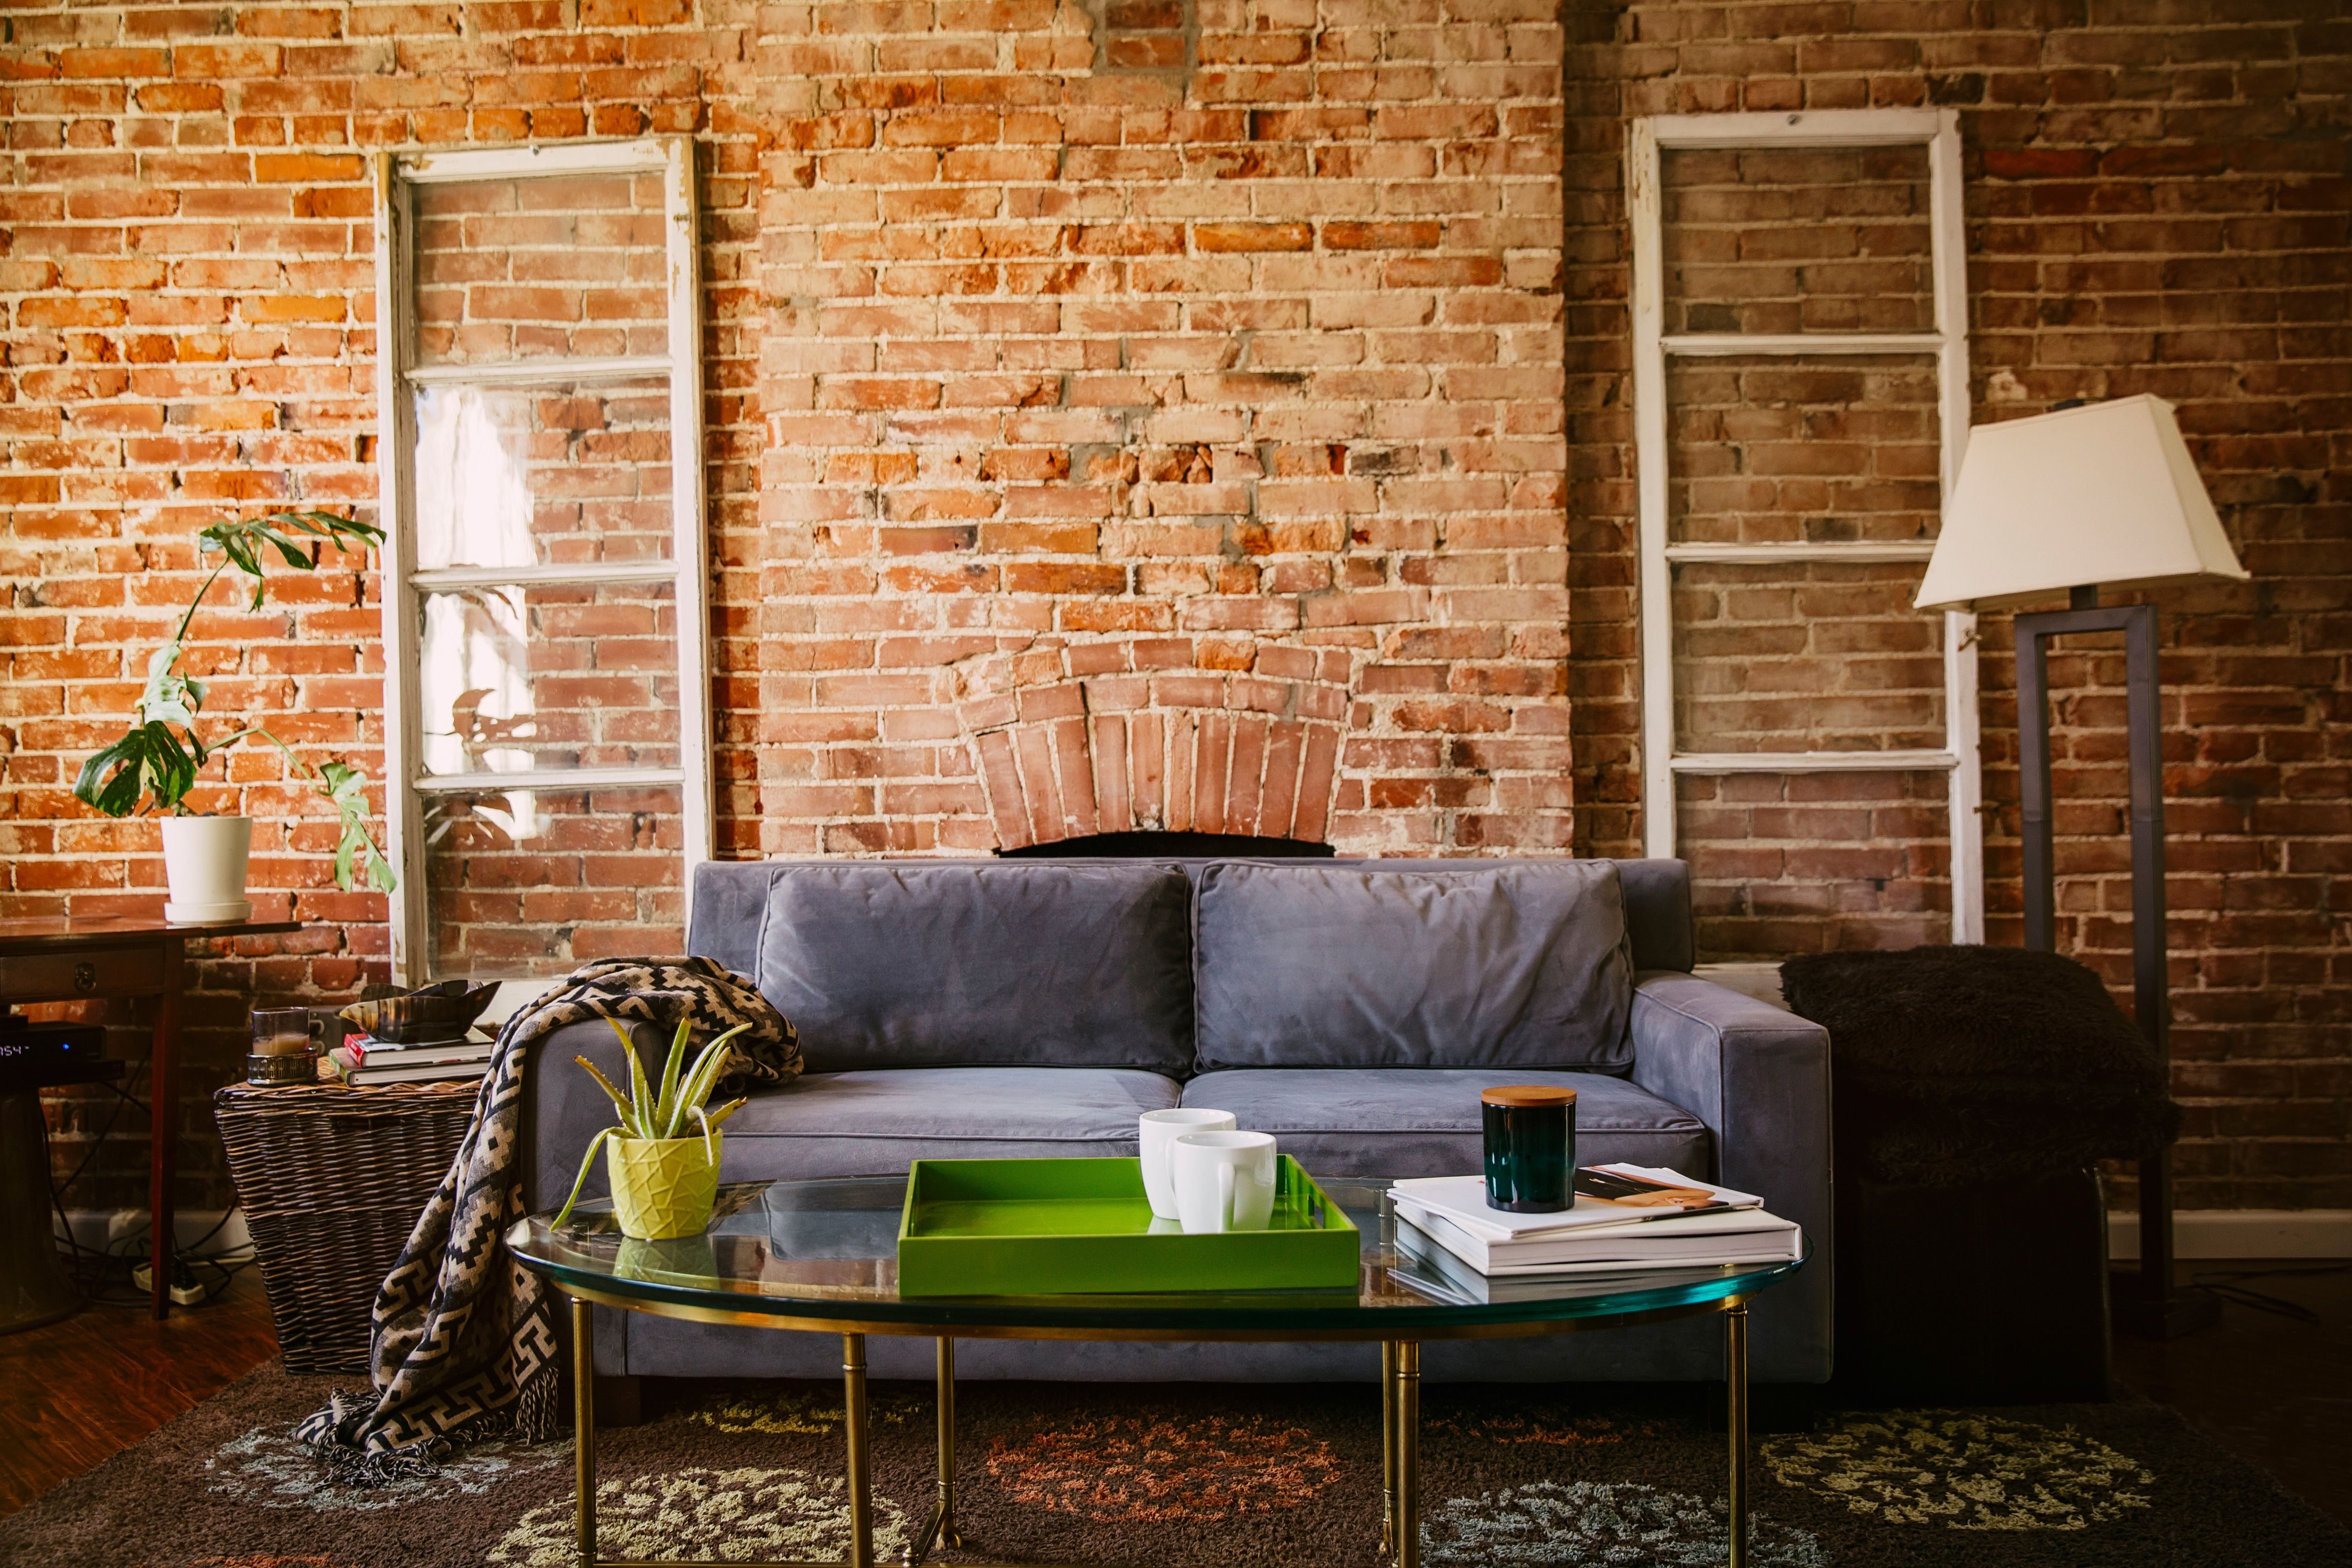 Brick Wall Design Pros Cons Of Exposed Brick How To Care For Brick Walls